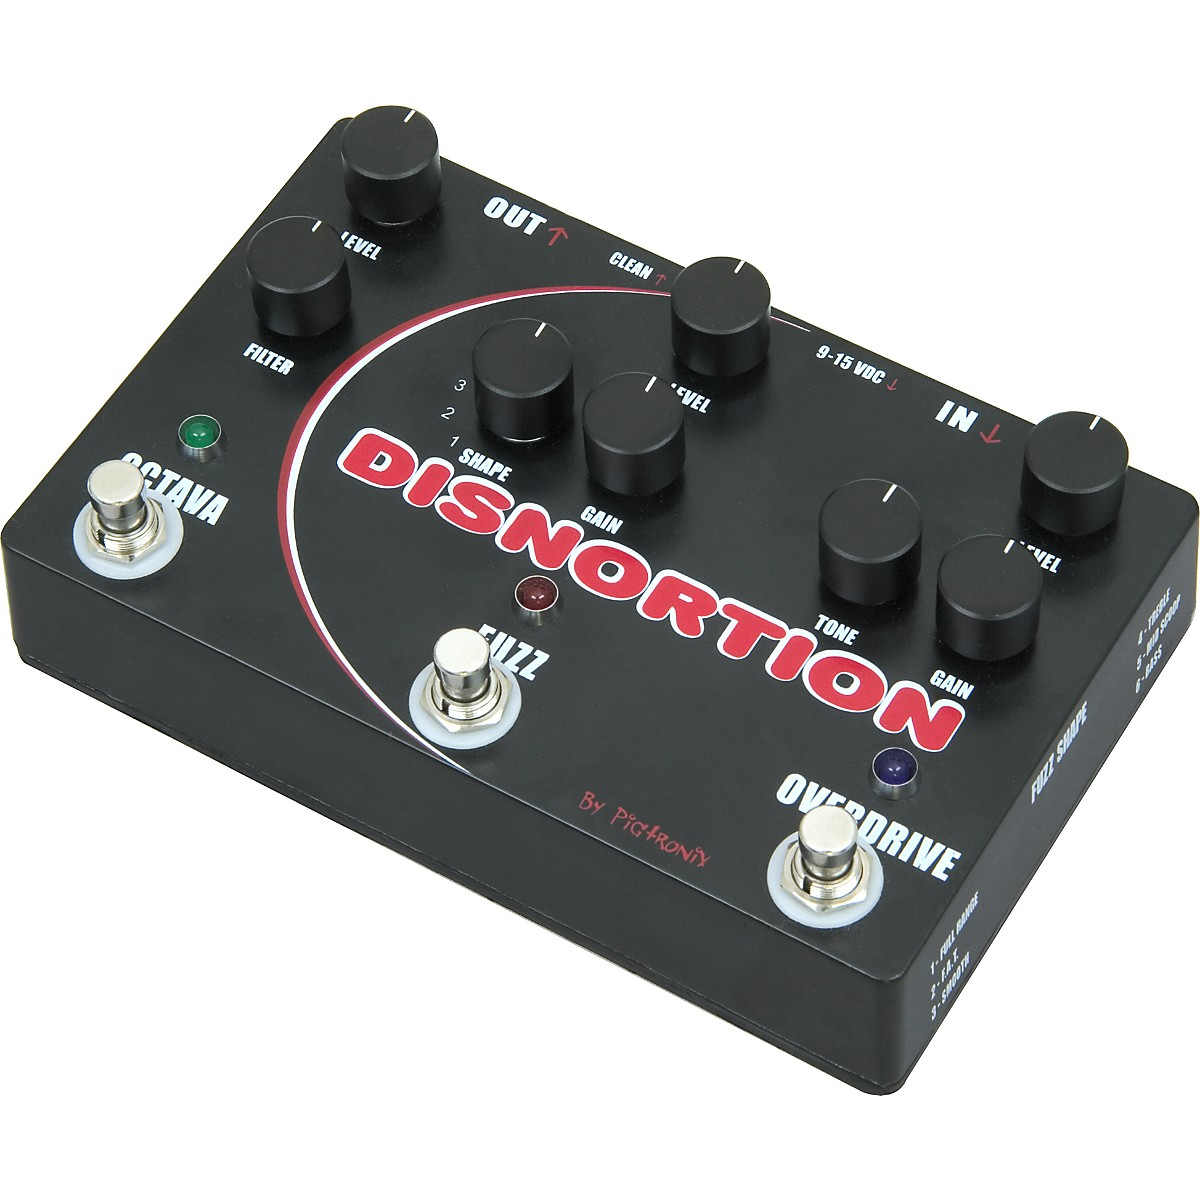 Pigtronix OFO Disnortion FX Pedal